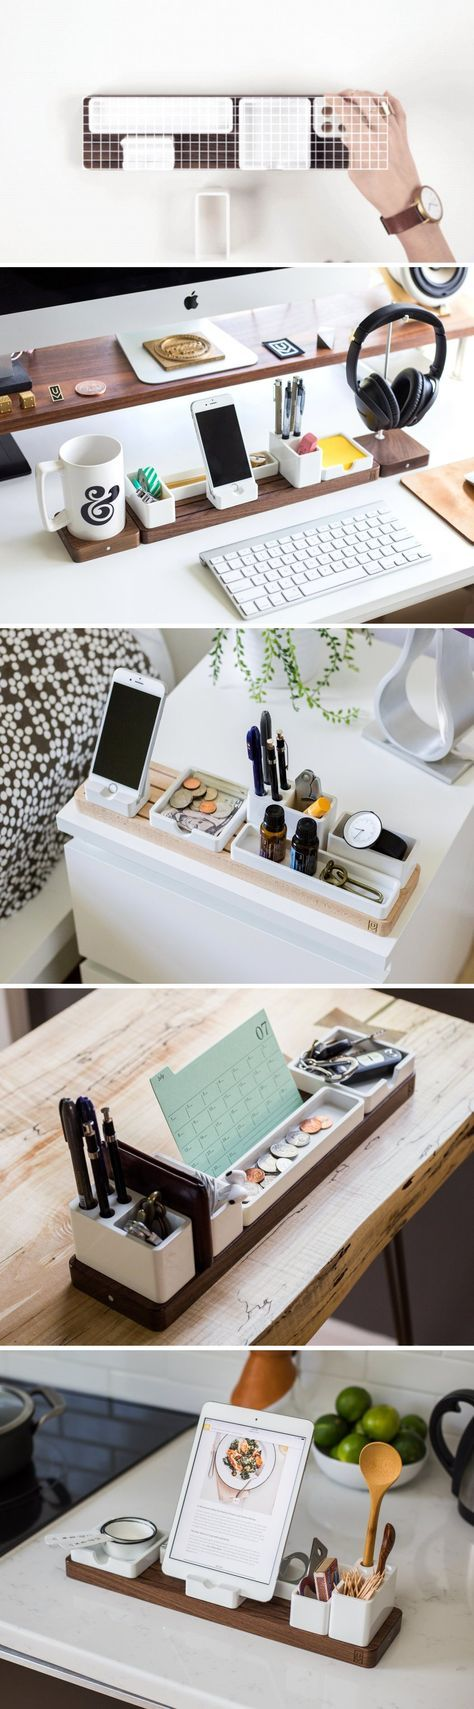 12 Best Projekty Images On Pinterest Home Ideas Dinner Room And  # Muebles Kowalczuk